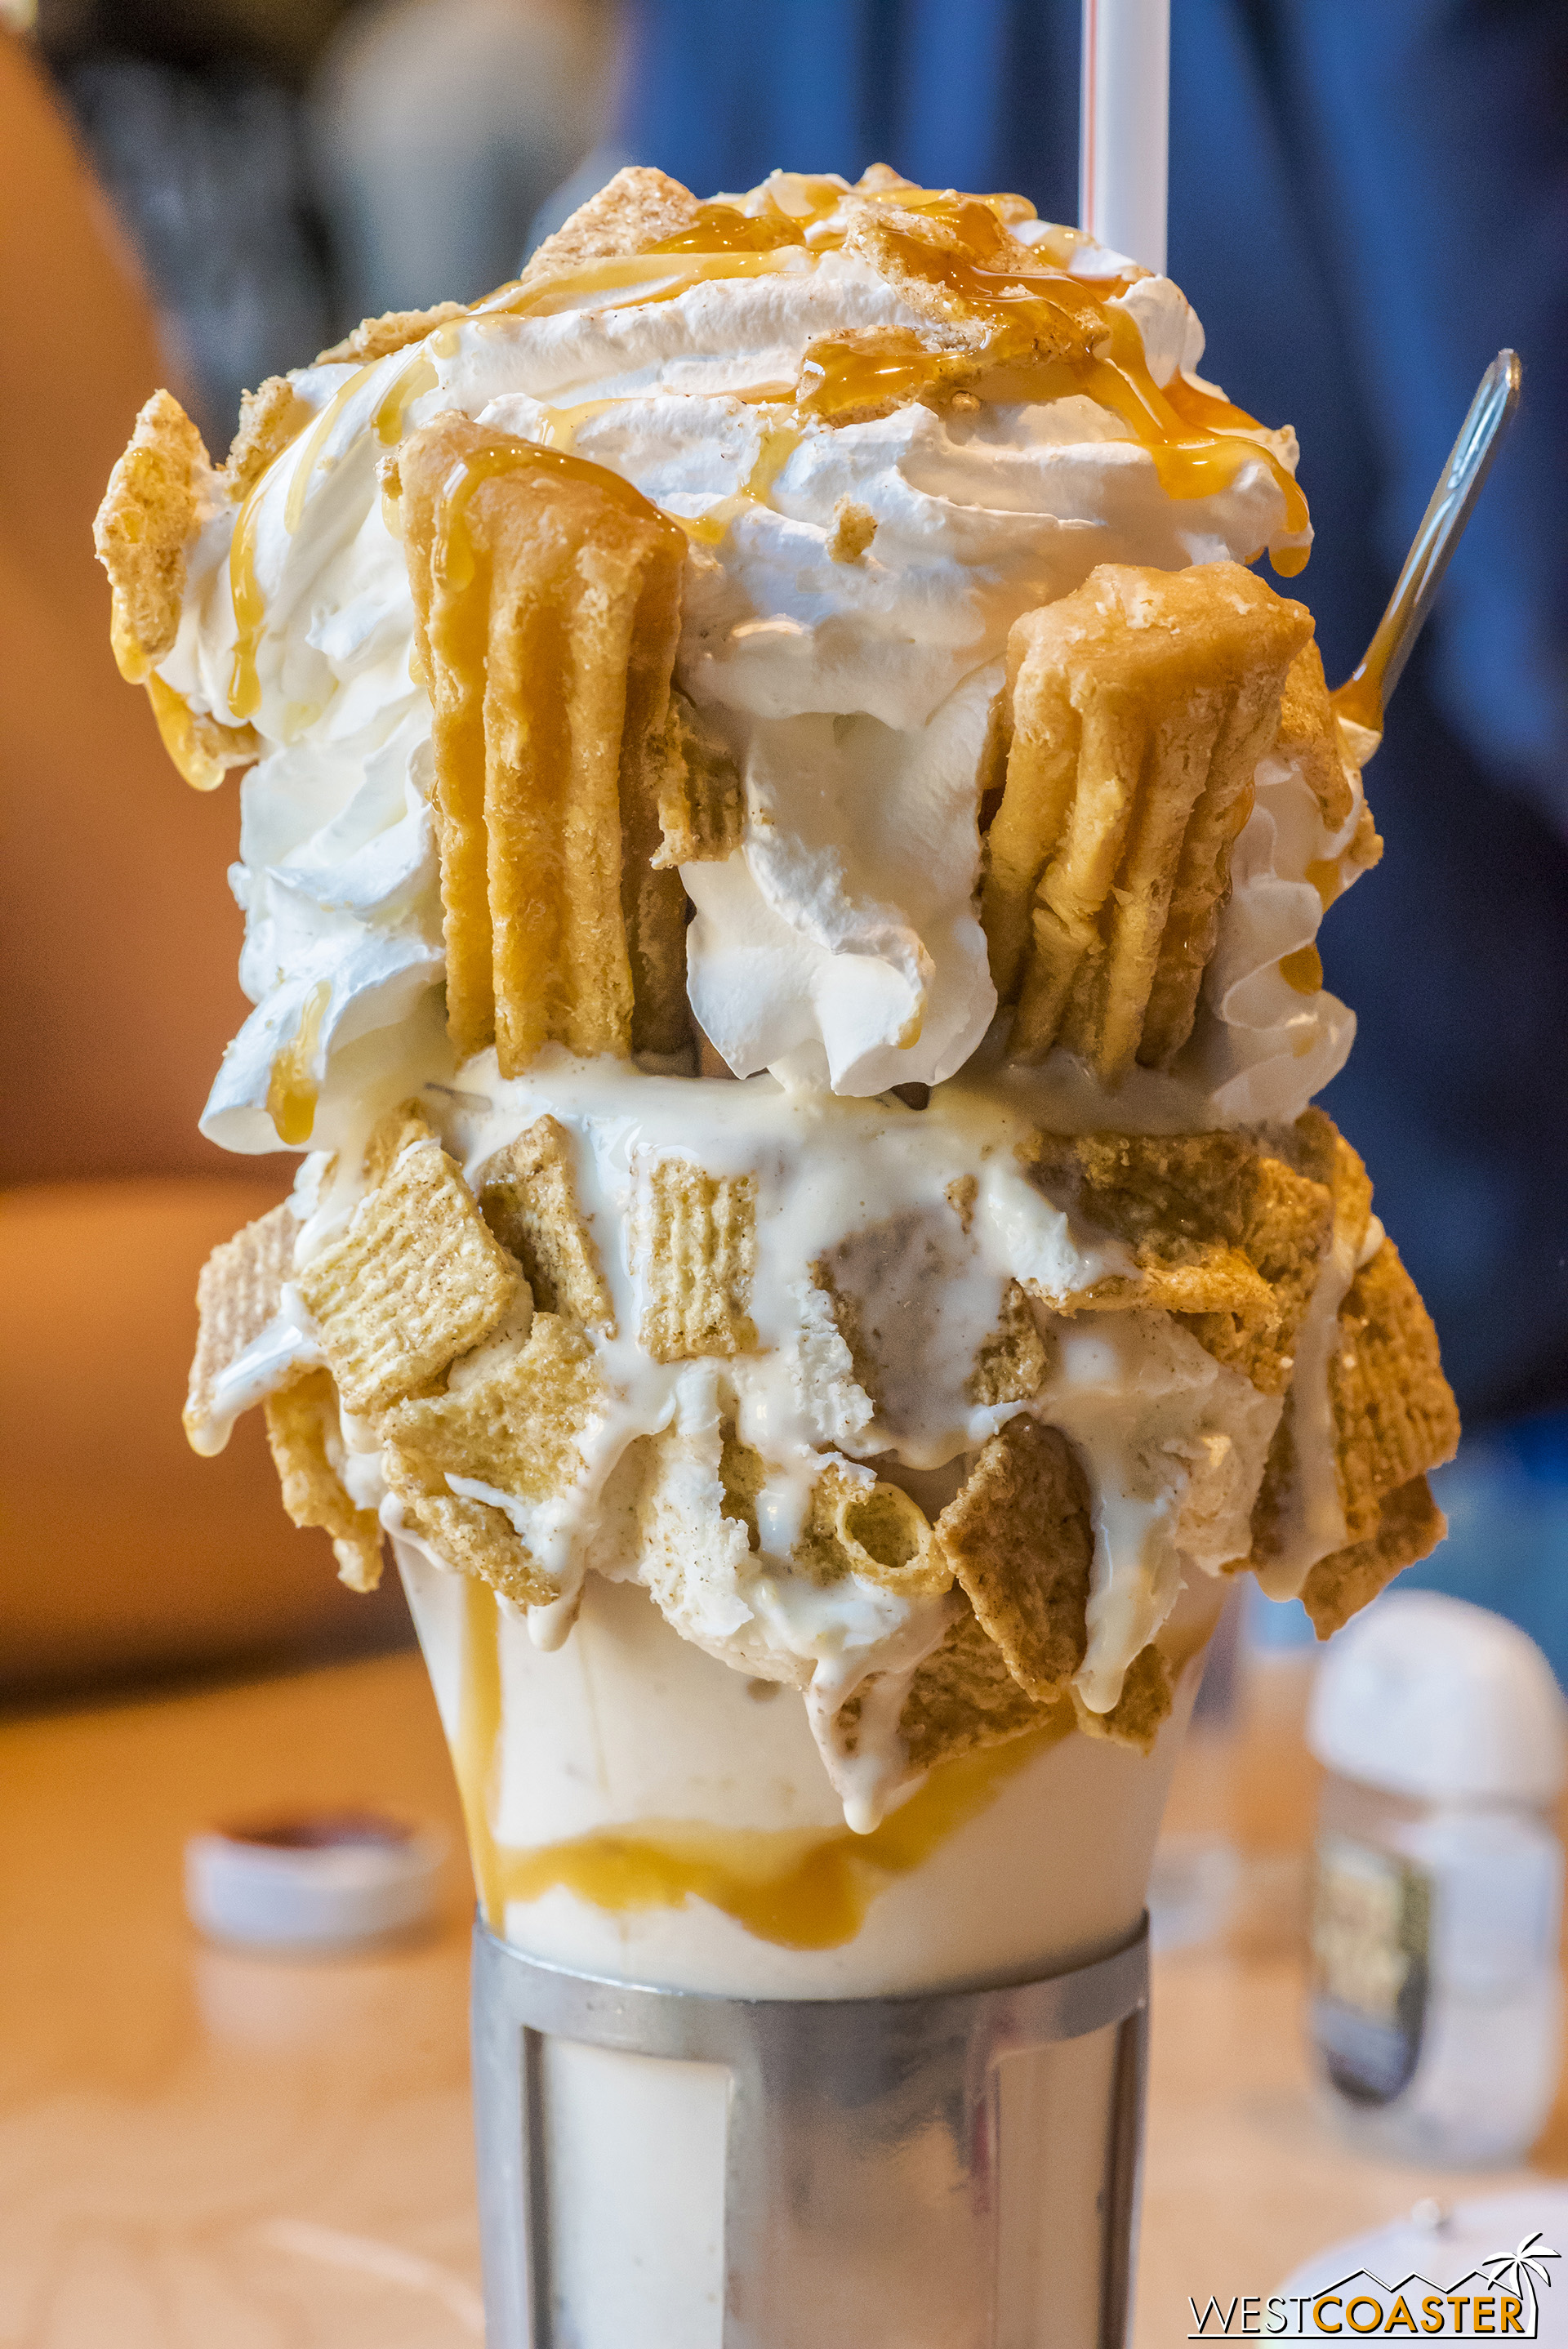 Here's the Churro Choco Taco Crazy Shake, which features the Choco Taco ice cream treat, two curros, creme de leche, whipped cream, and ice cream, and of course, diabetes.